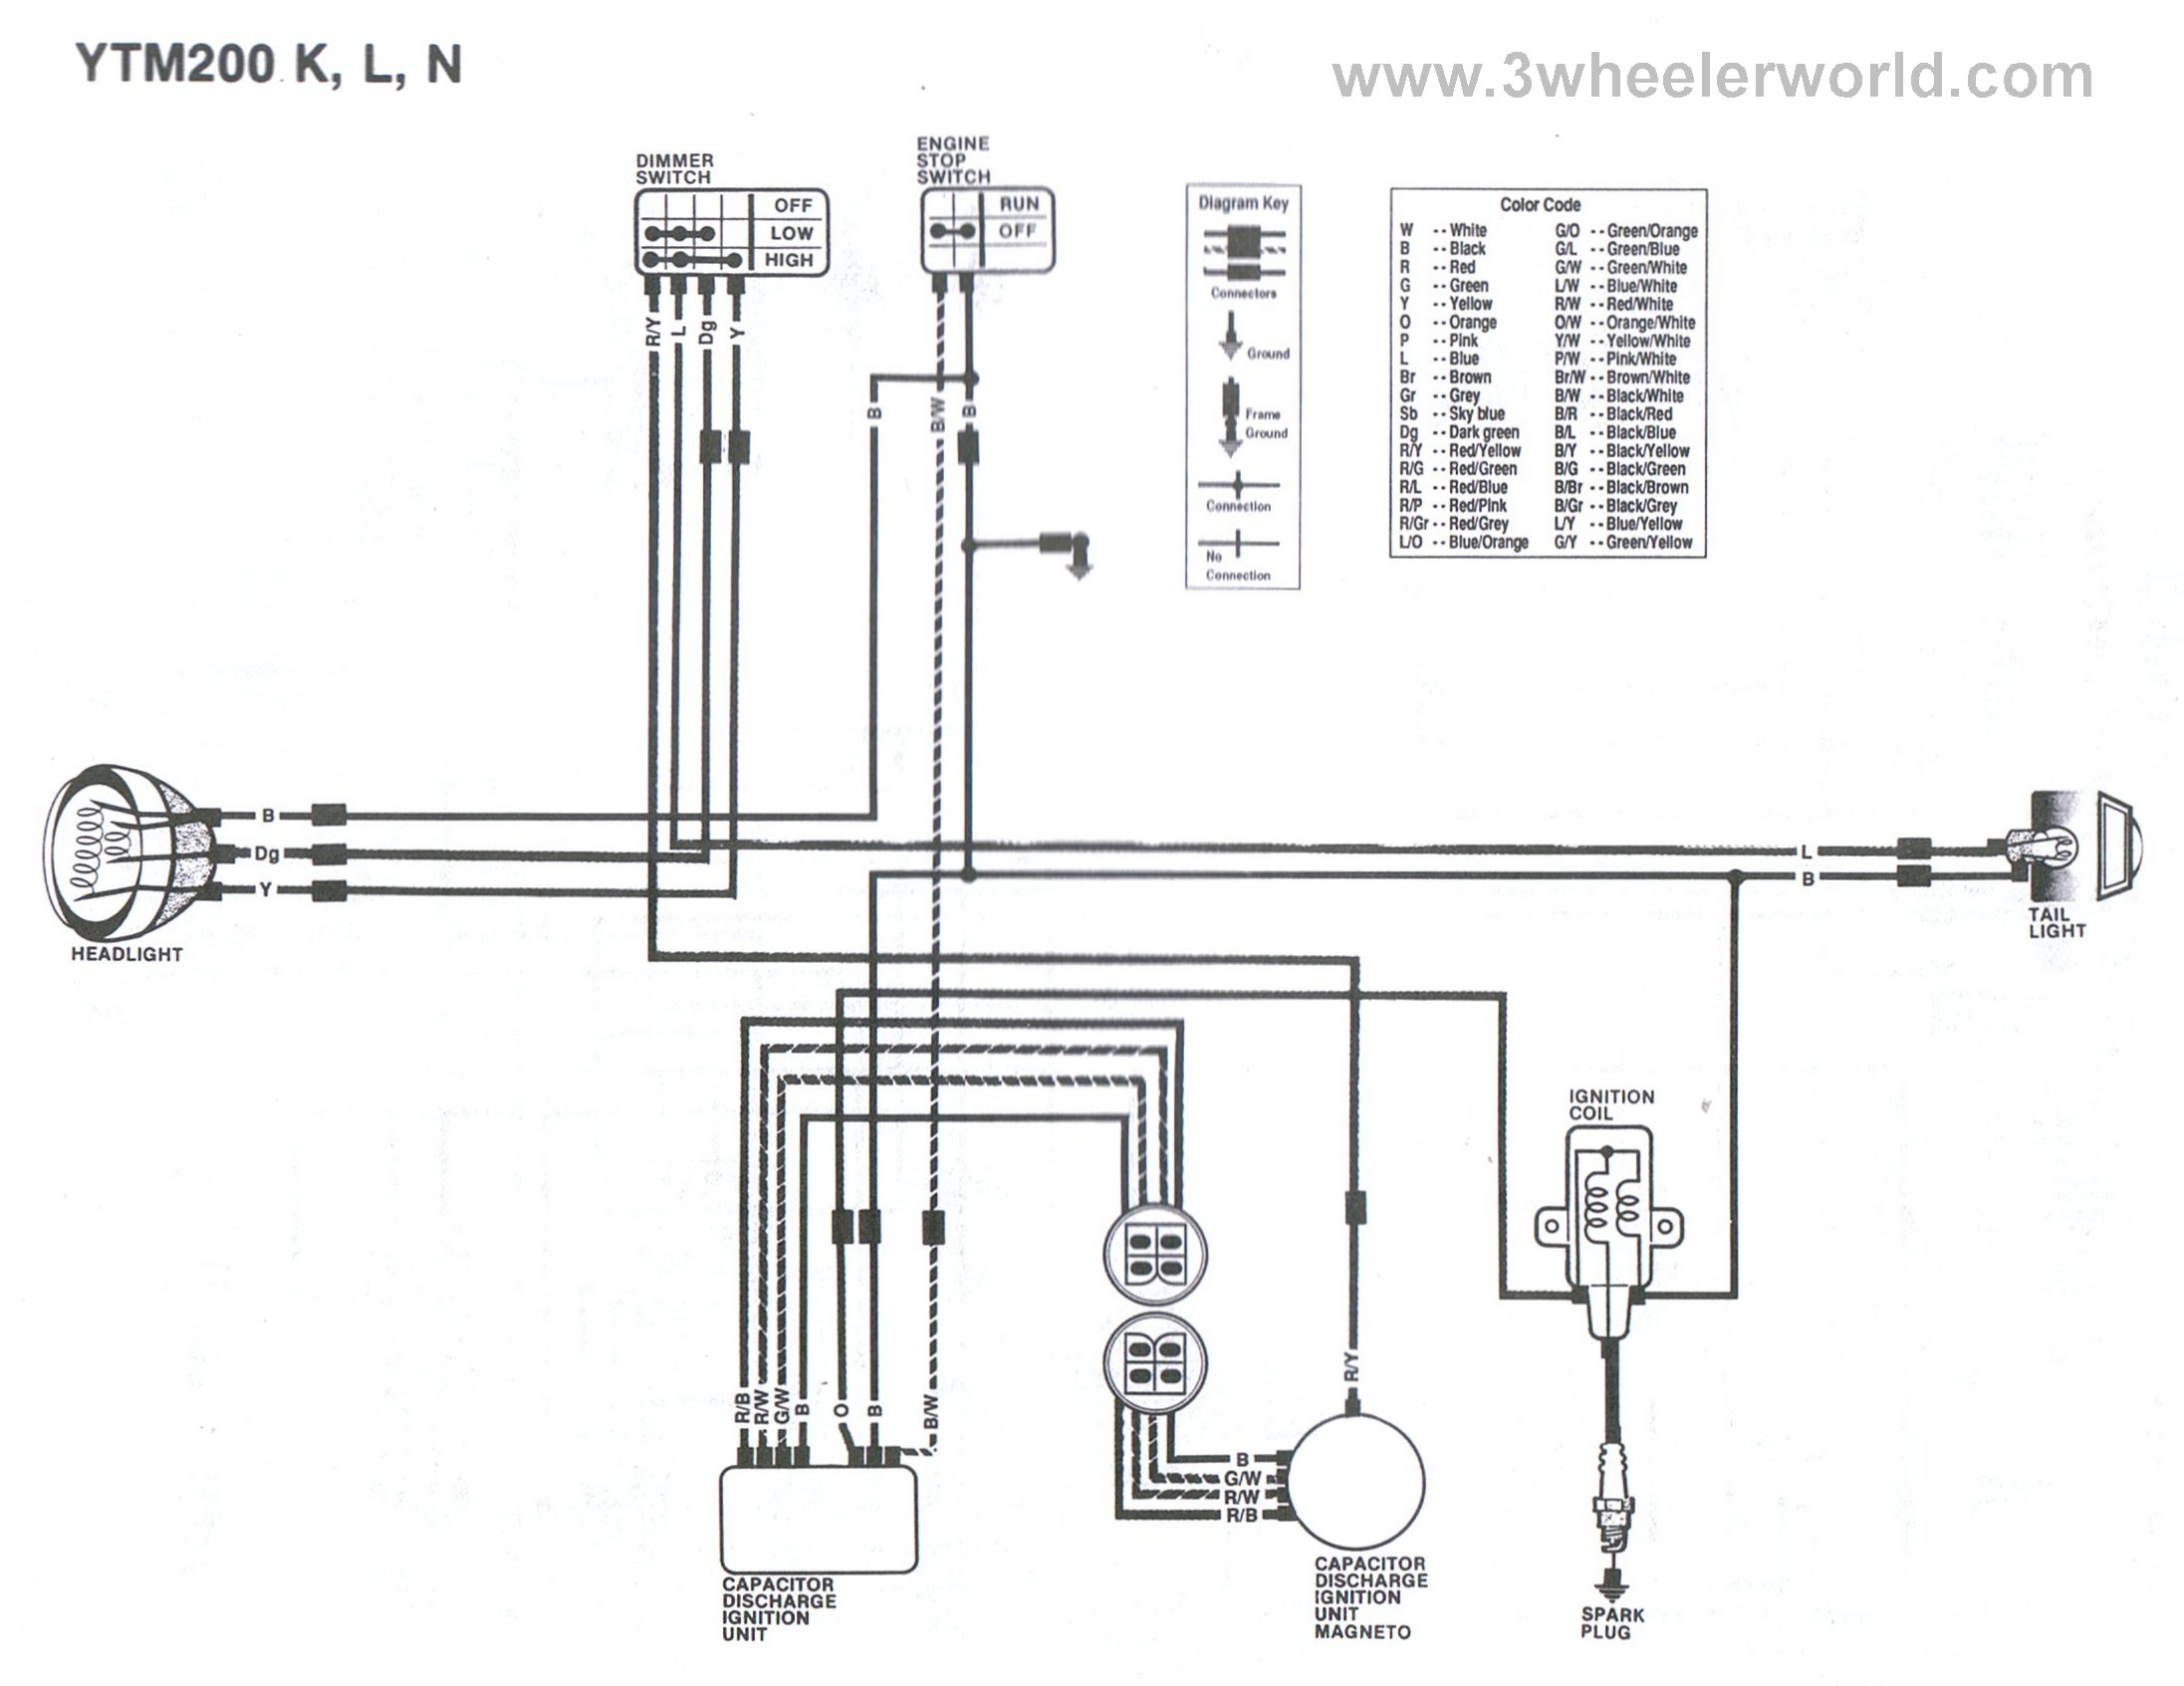 YTM200KLN 3 wheeler world tech help yamaha wiring diagrams 1986 yamaha moto 4 200 wiring schematic at bayanpartner.co